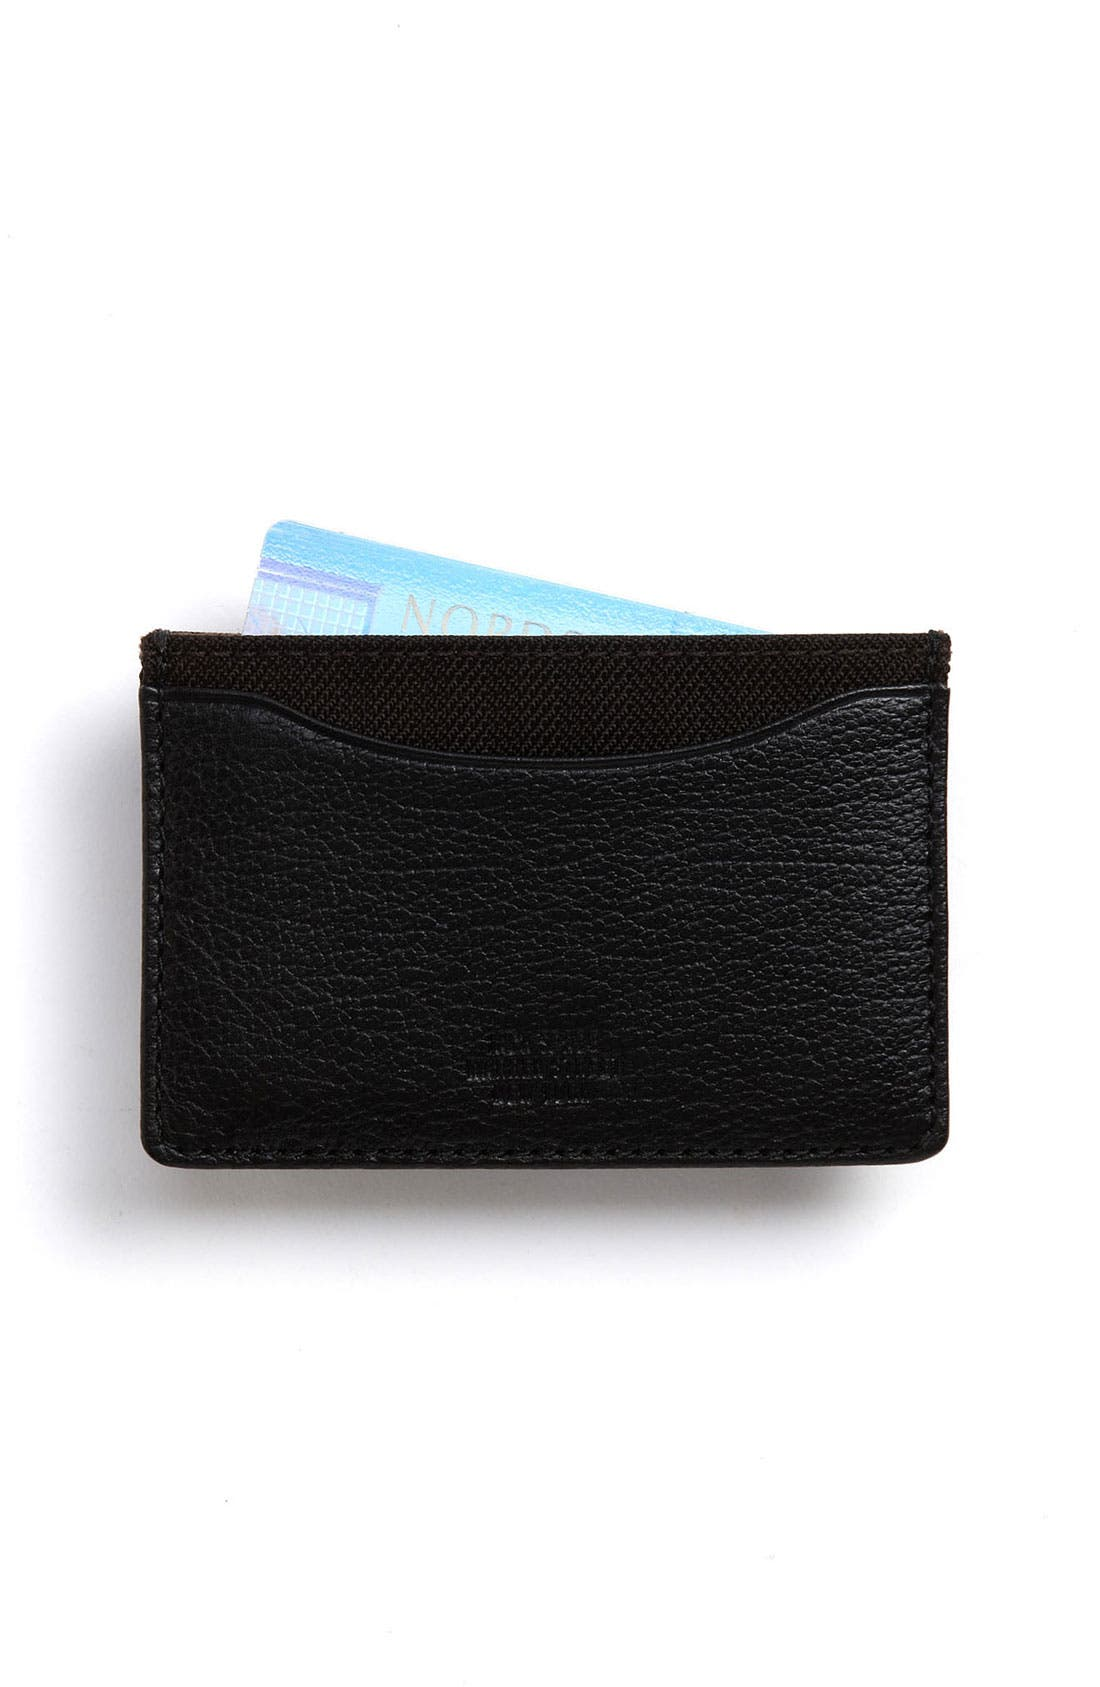 Main Image - Jack Spade Credit Card Holder